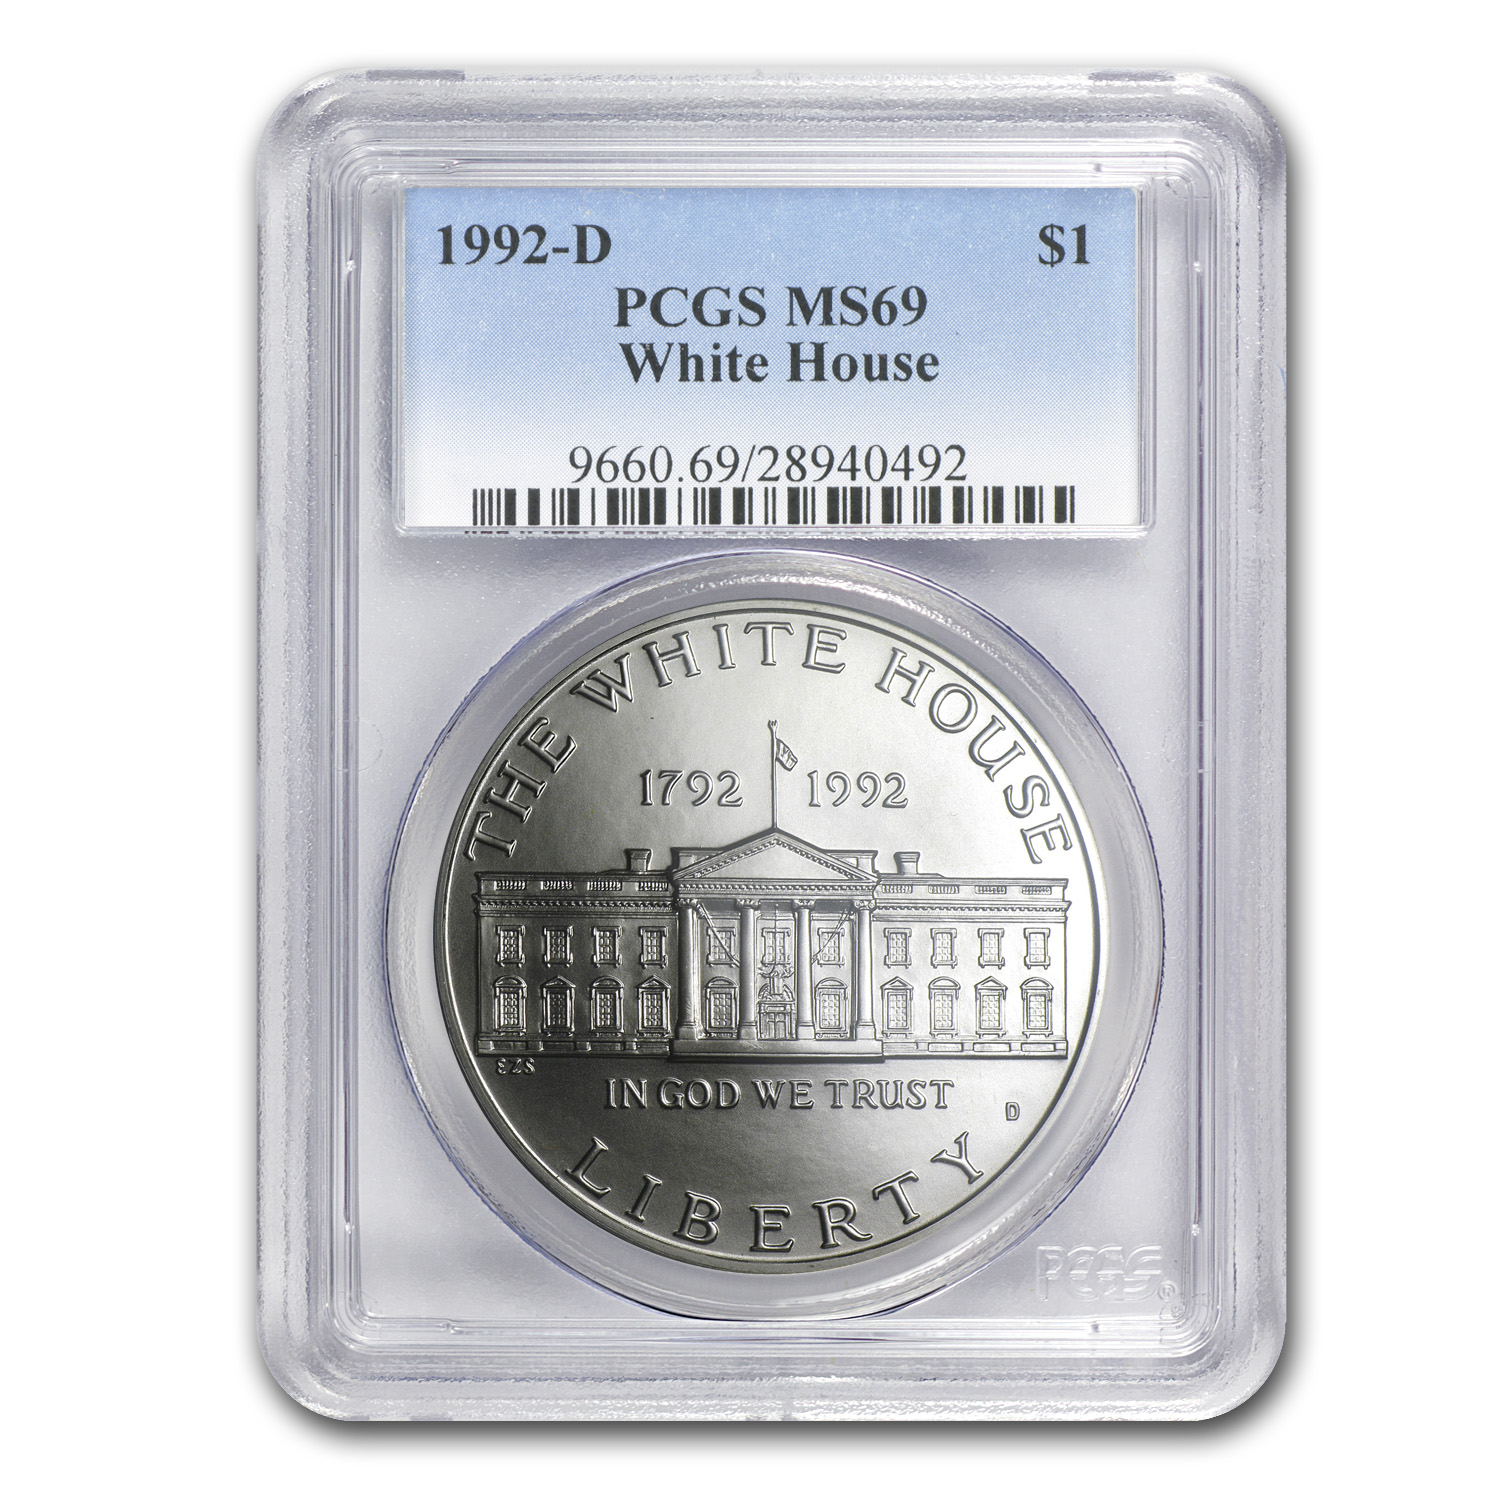 1992-D White House $1 Silver Commemorative MS-69 PCGS